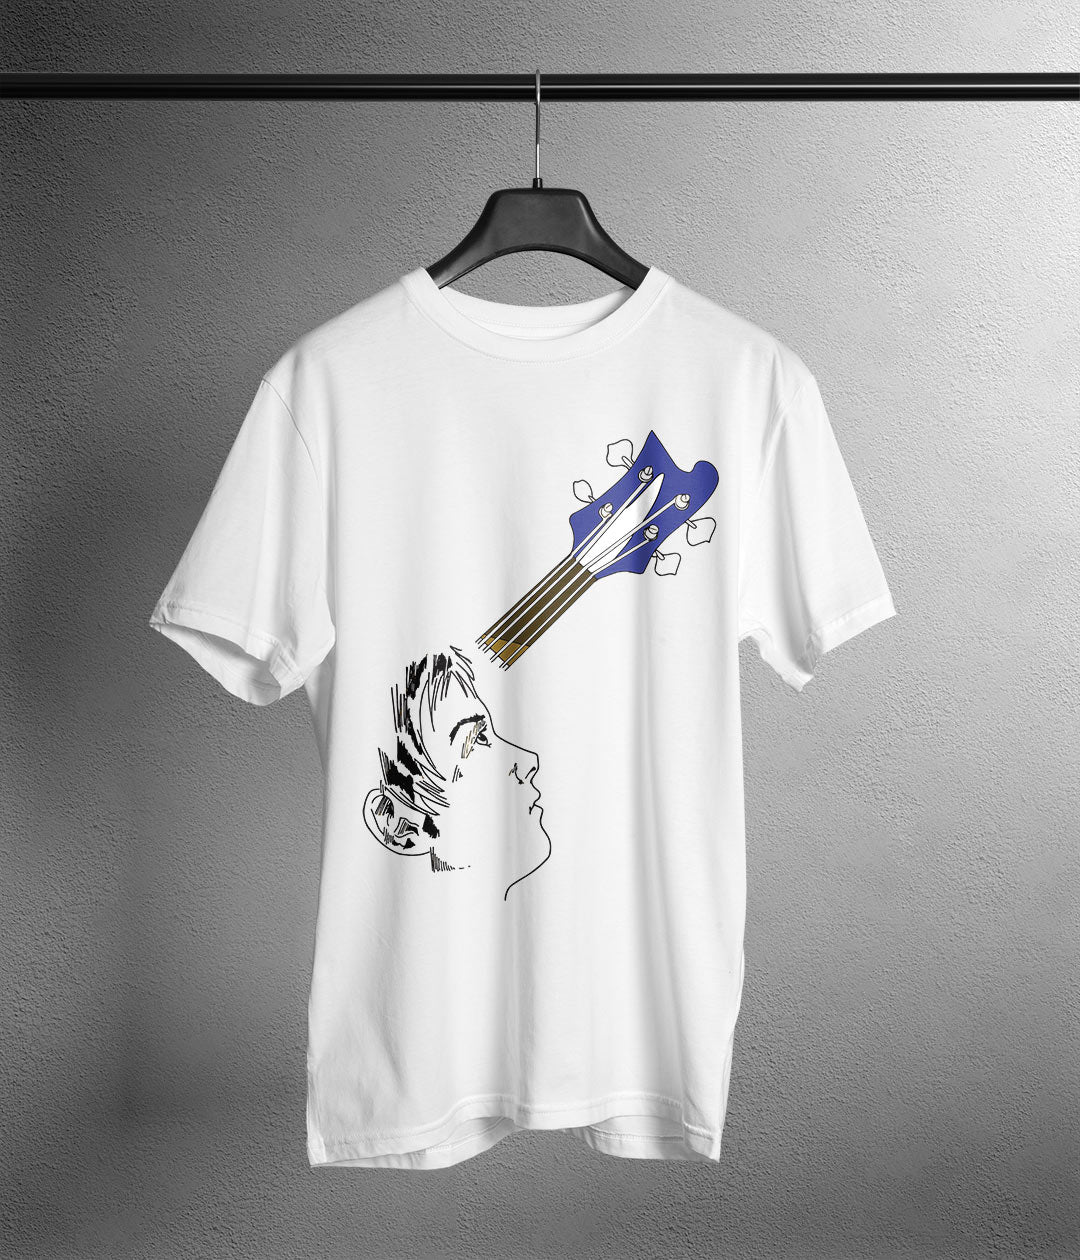 white t shirt with anime head and guitar